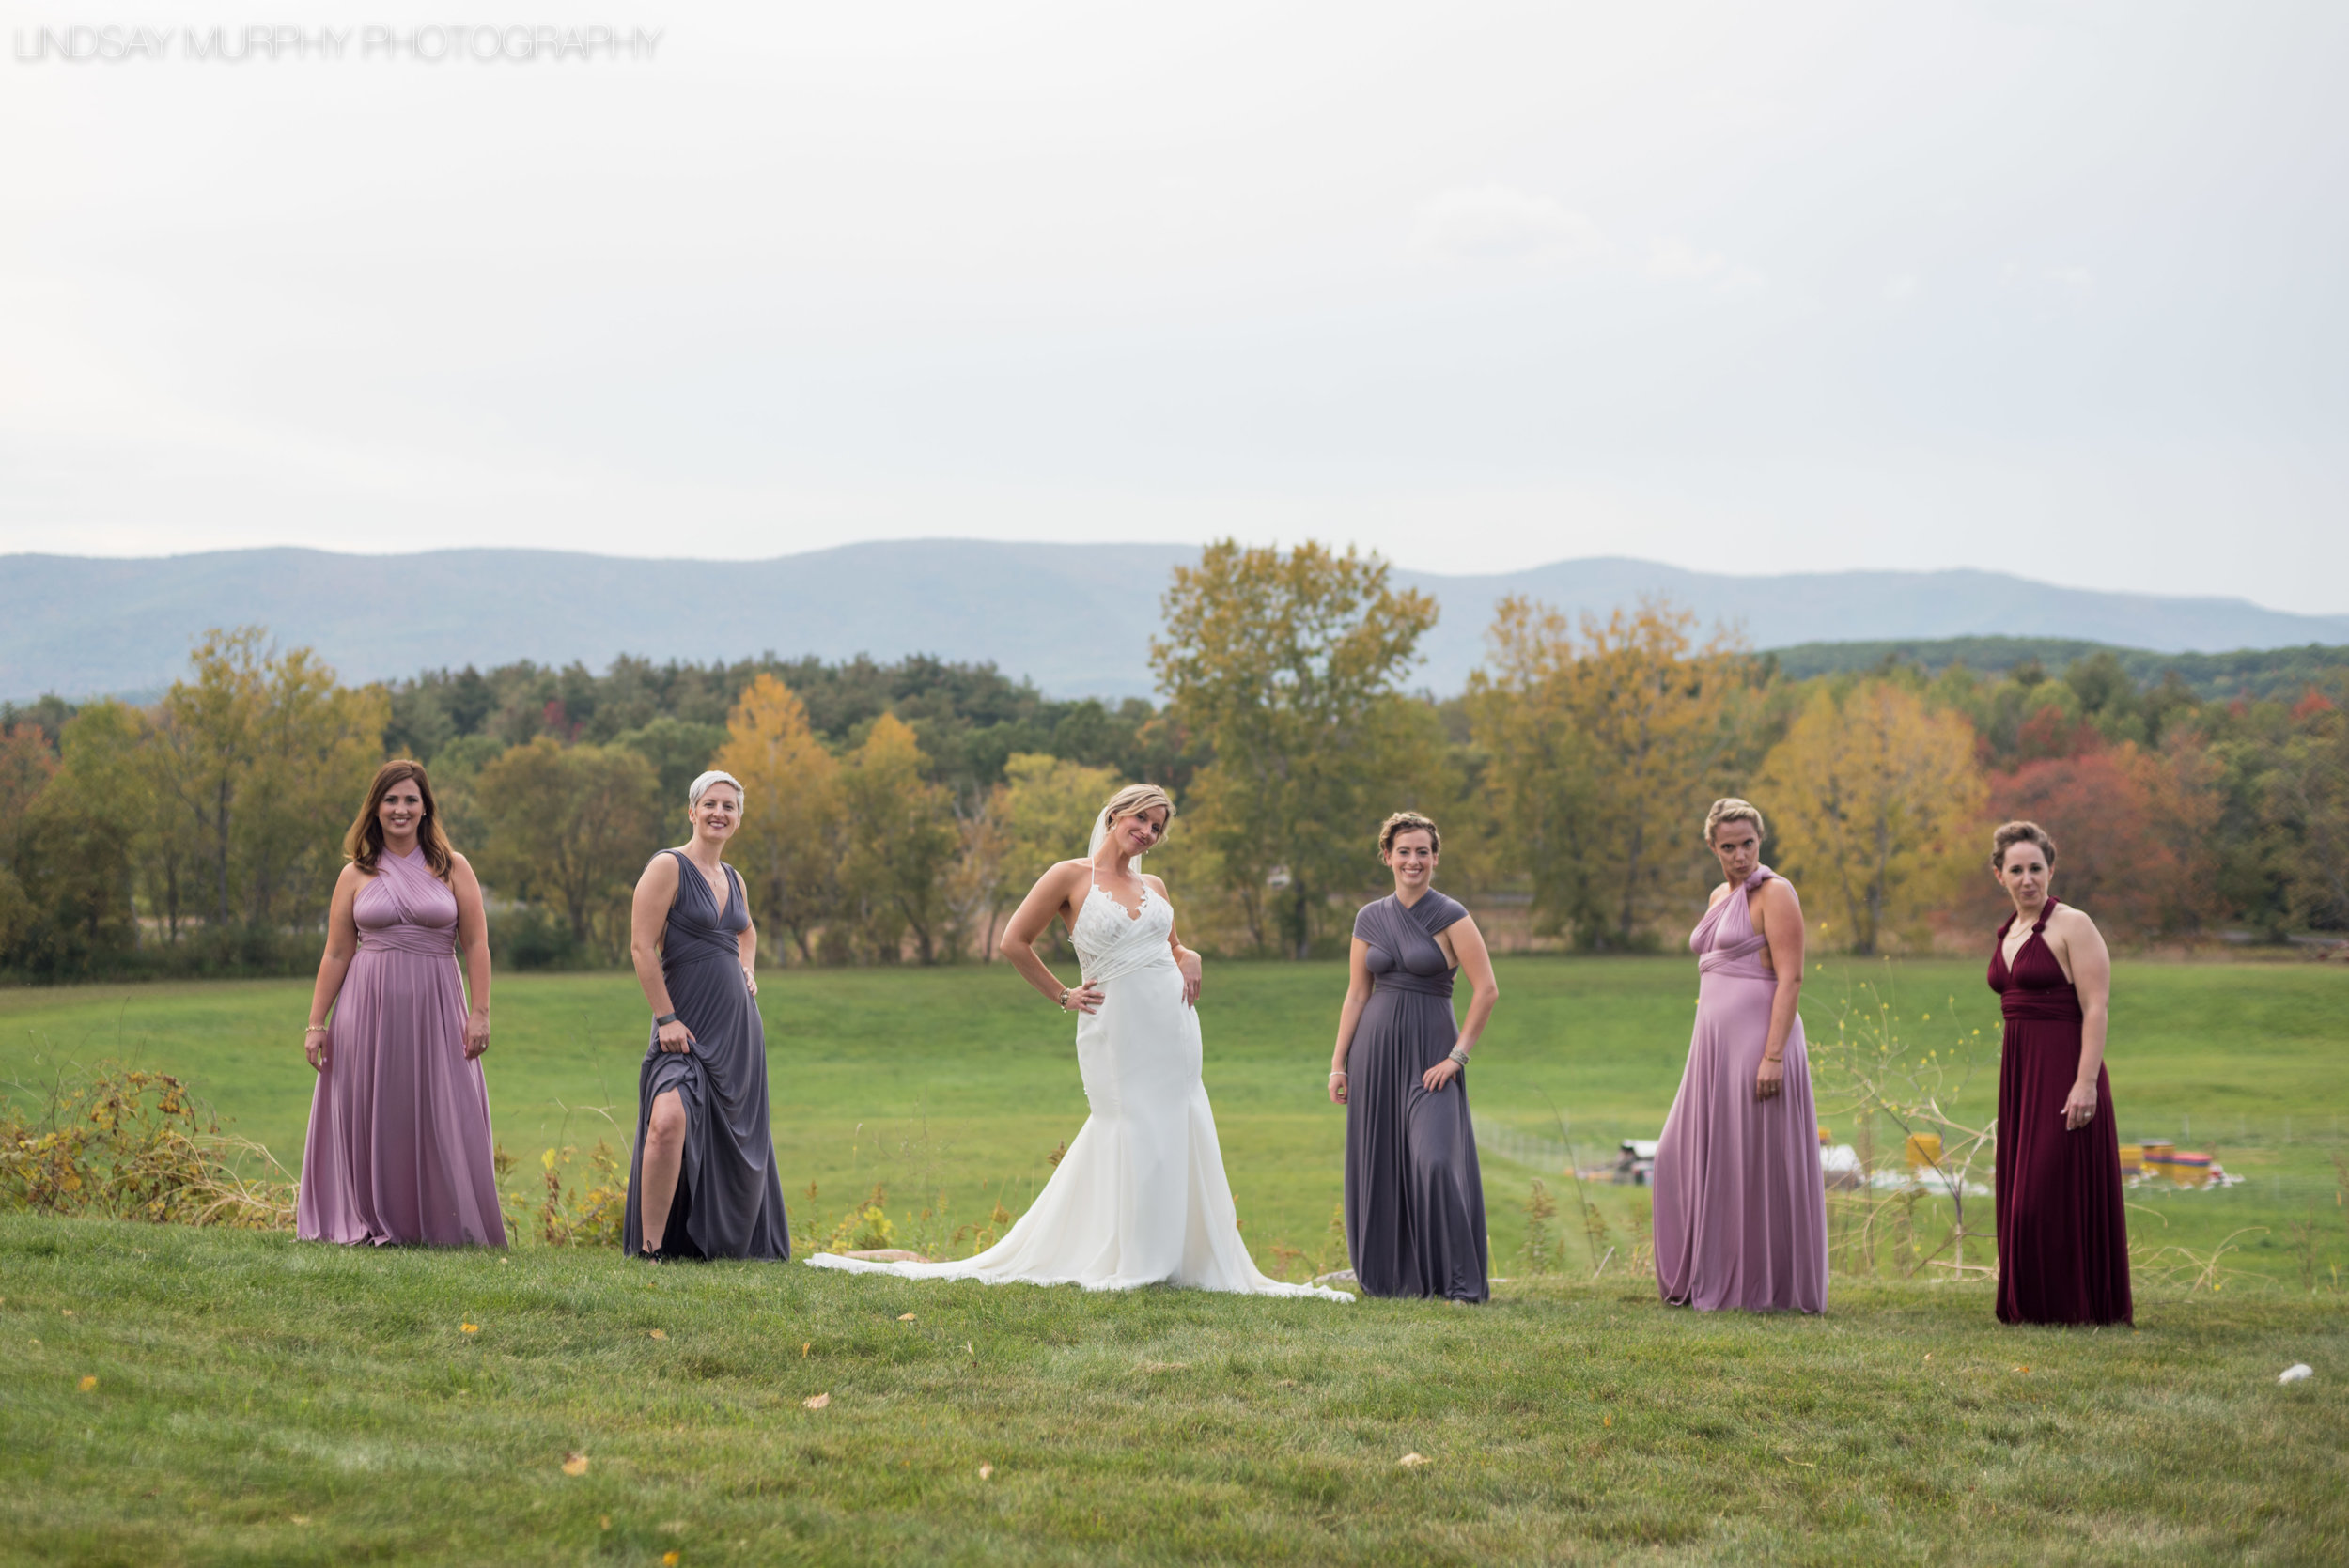 new_england_wedding-34.jpg